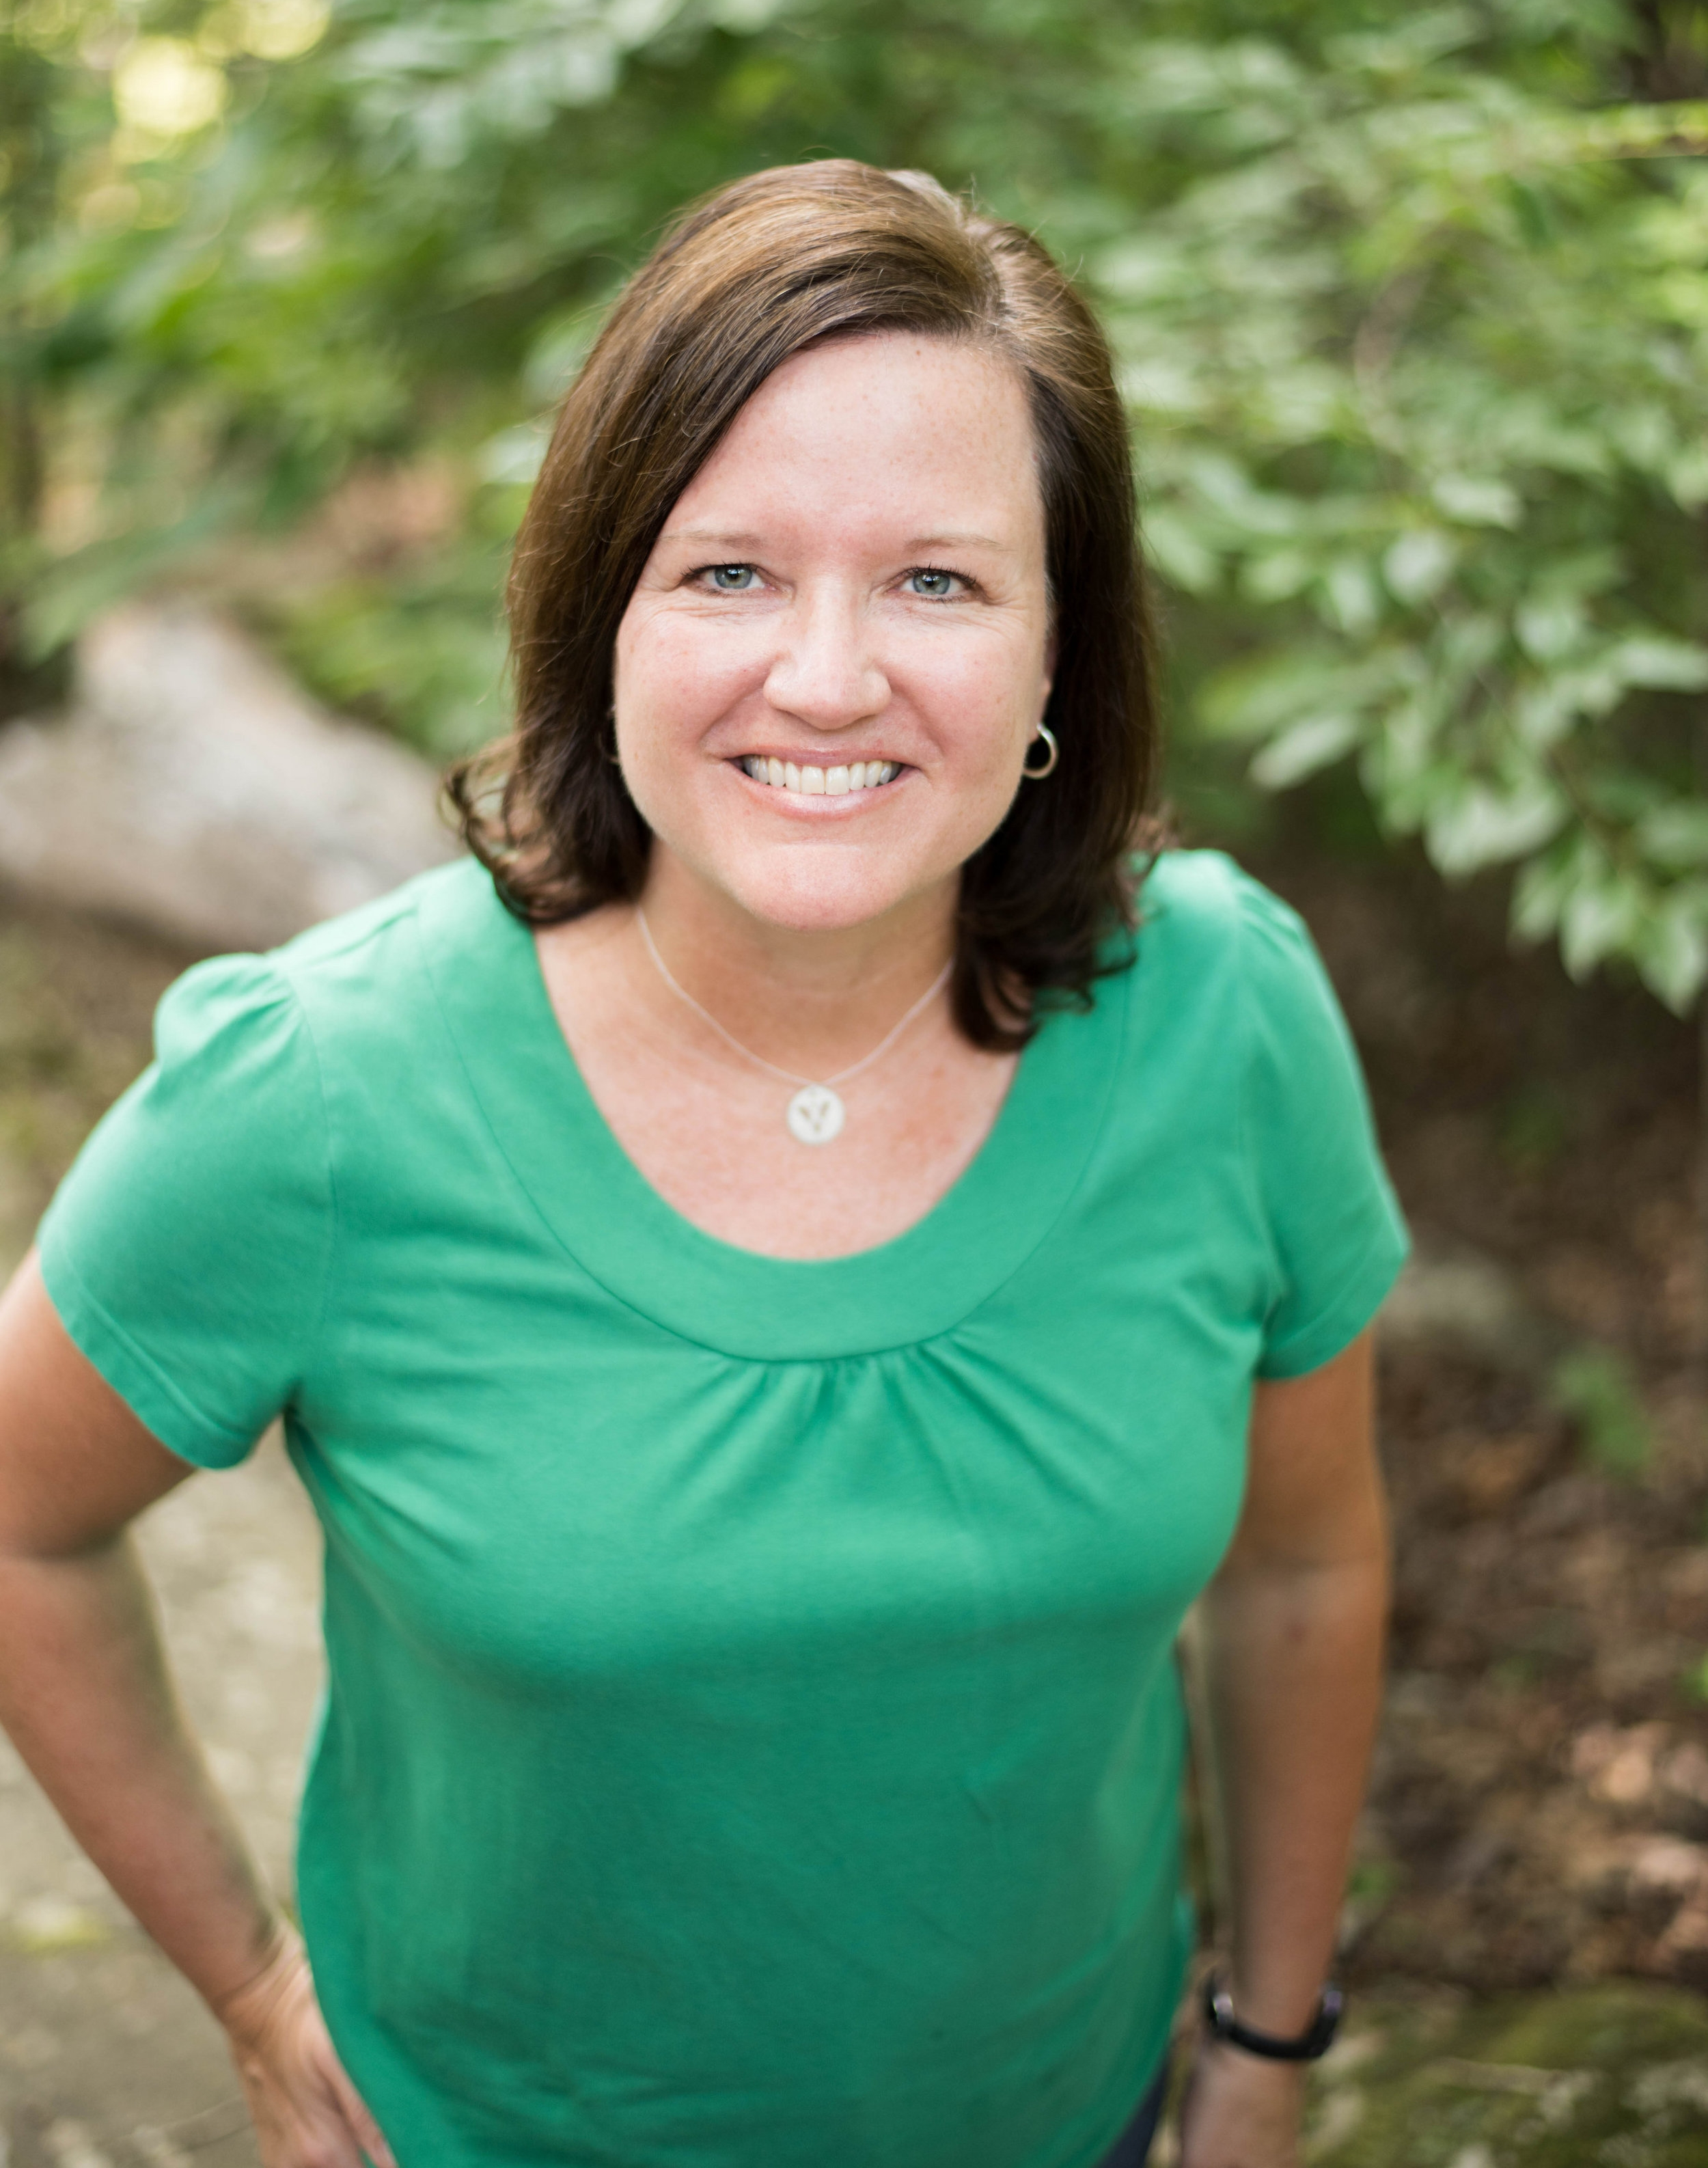 Head Administrator  Leanne has a BS in education from the University of West Georgia. She taught elementary students for 6 years in Gwinnett Co. Georgia. She served on staff at Look Up Lodge to gain 18 years experience in Christian camping and discipleship of young women.